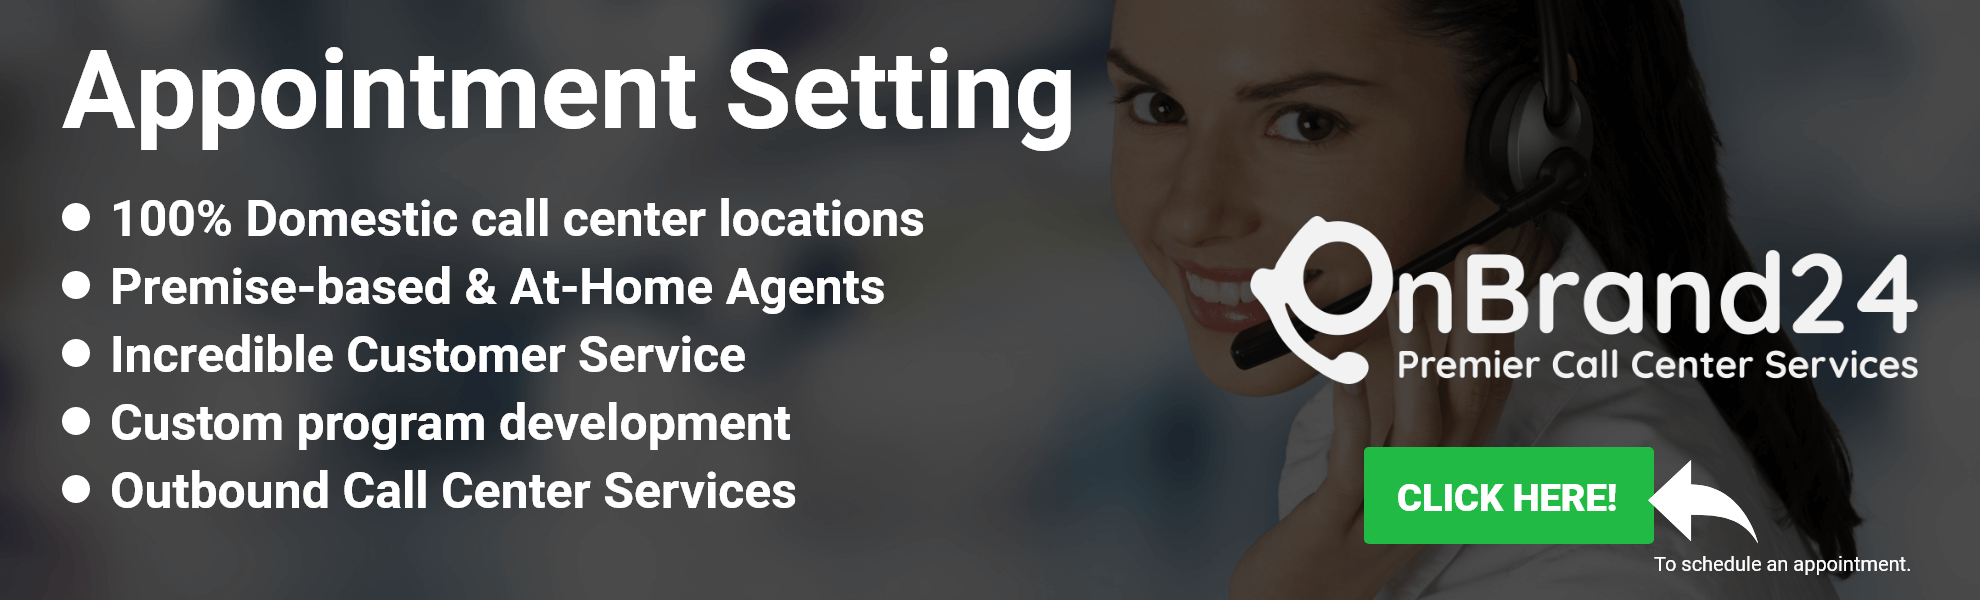 Appointment Setting Call Center Service